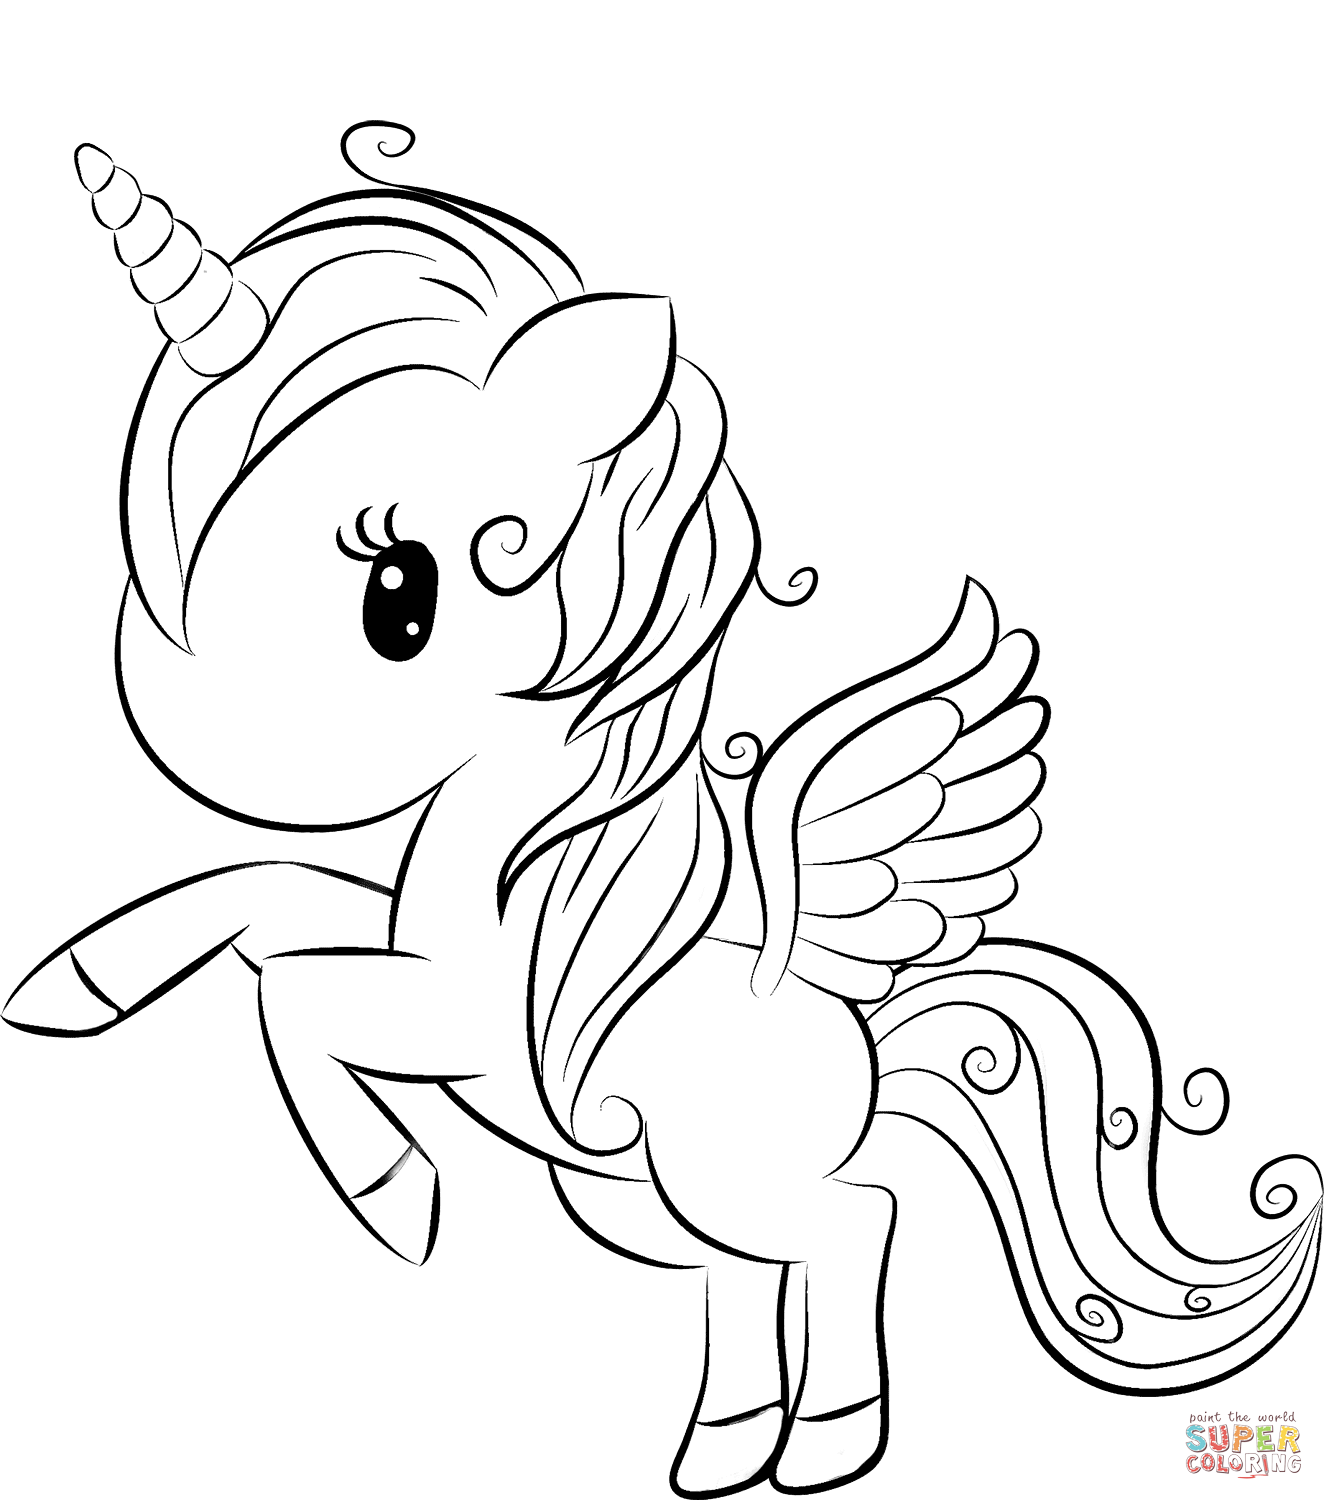 Latest Absolutely Free Kids Coloring Pages Ideas The Gorgeous Issue Regarding Colouring Is I Unicorn Coloring Pages Cute Coloring Pages Princess Coloring Pages